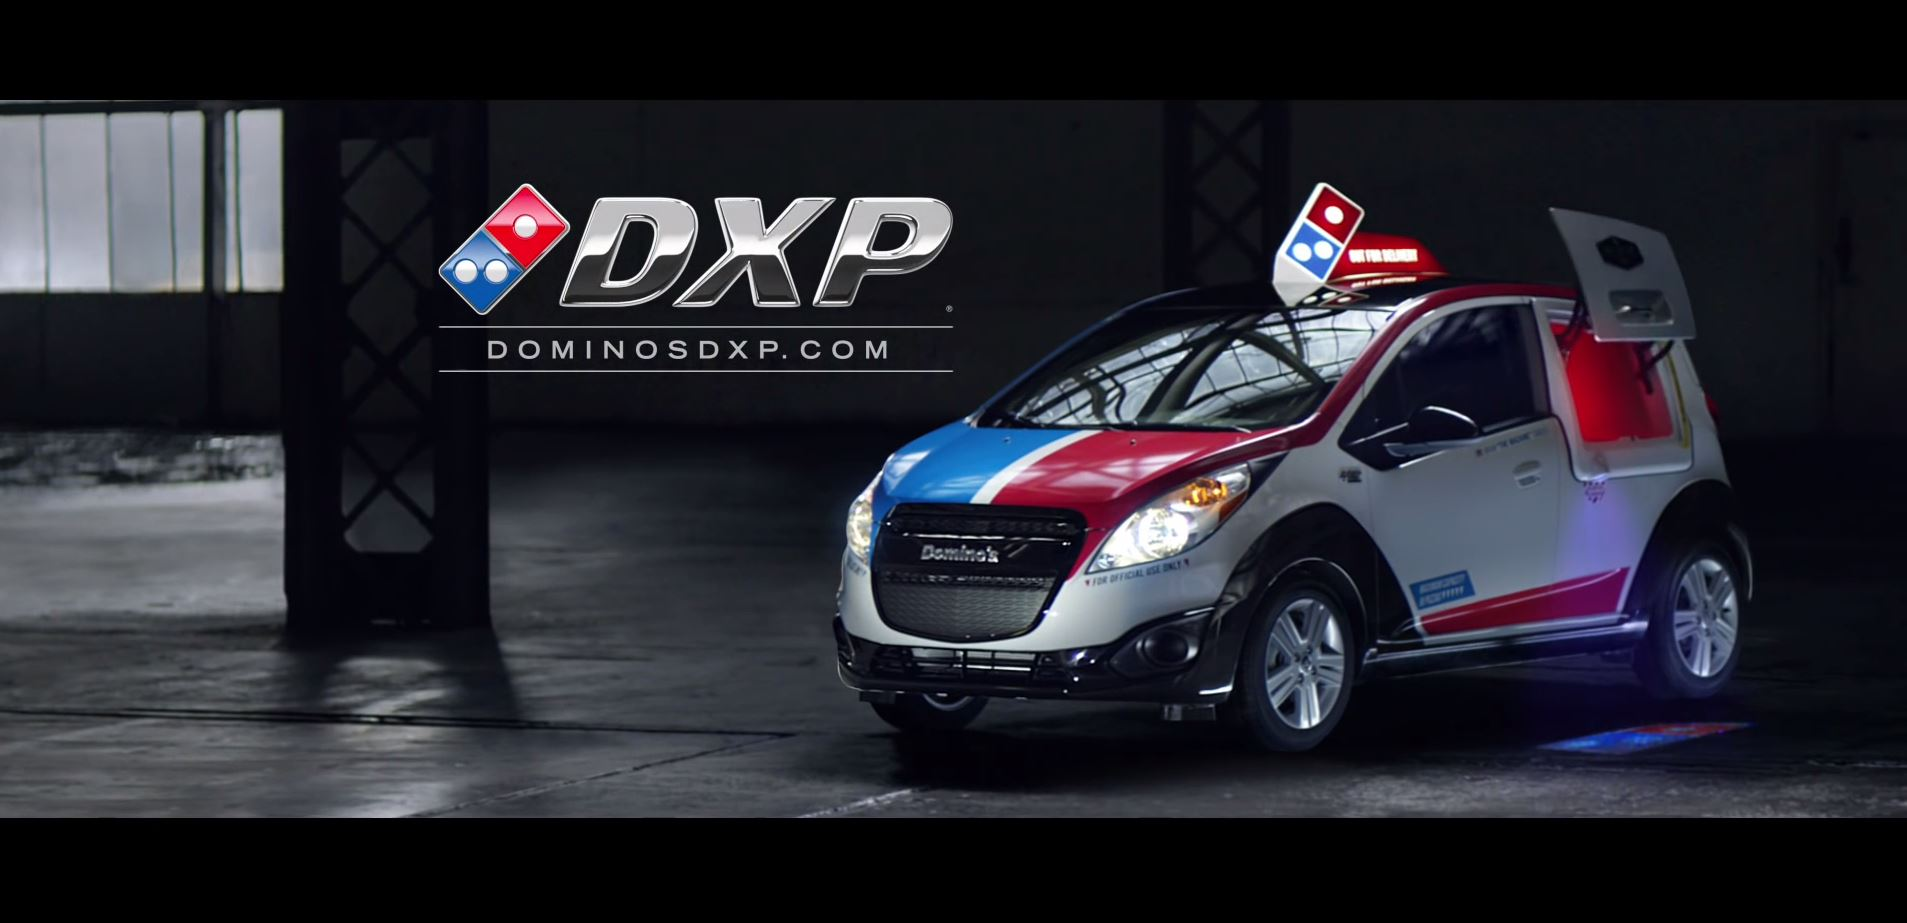 Domino S Dsx Is A Kickass Chevy Spark With A Pizza Oven 105018 on oscar mayer wienermobile contest